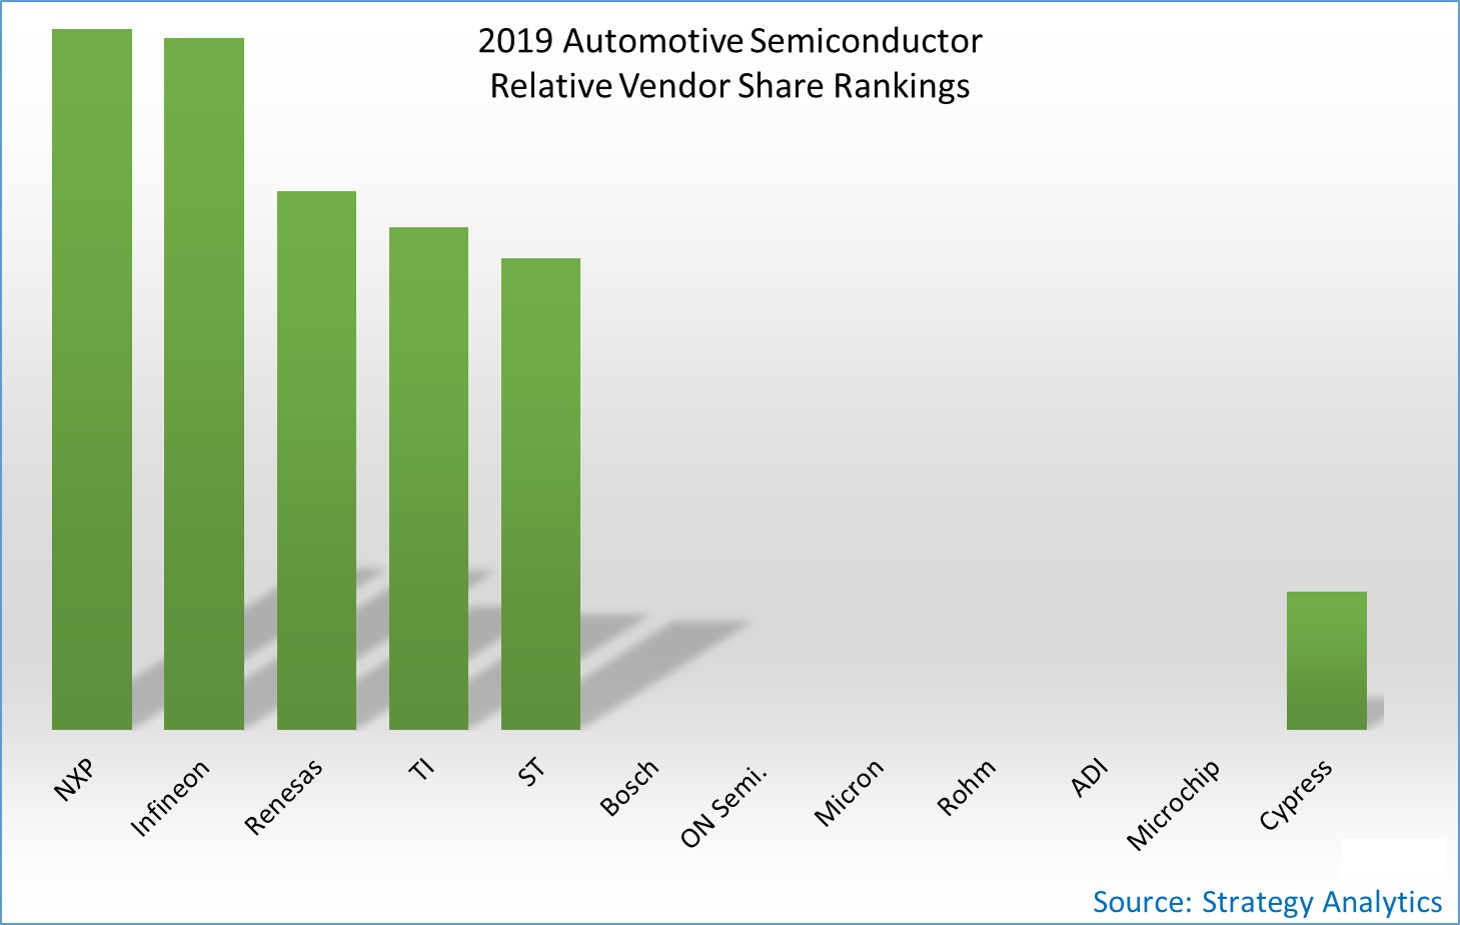 2019 Automotive Semiconductor Relative Vendor Share Rankings